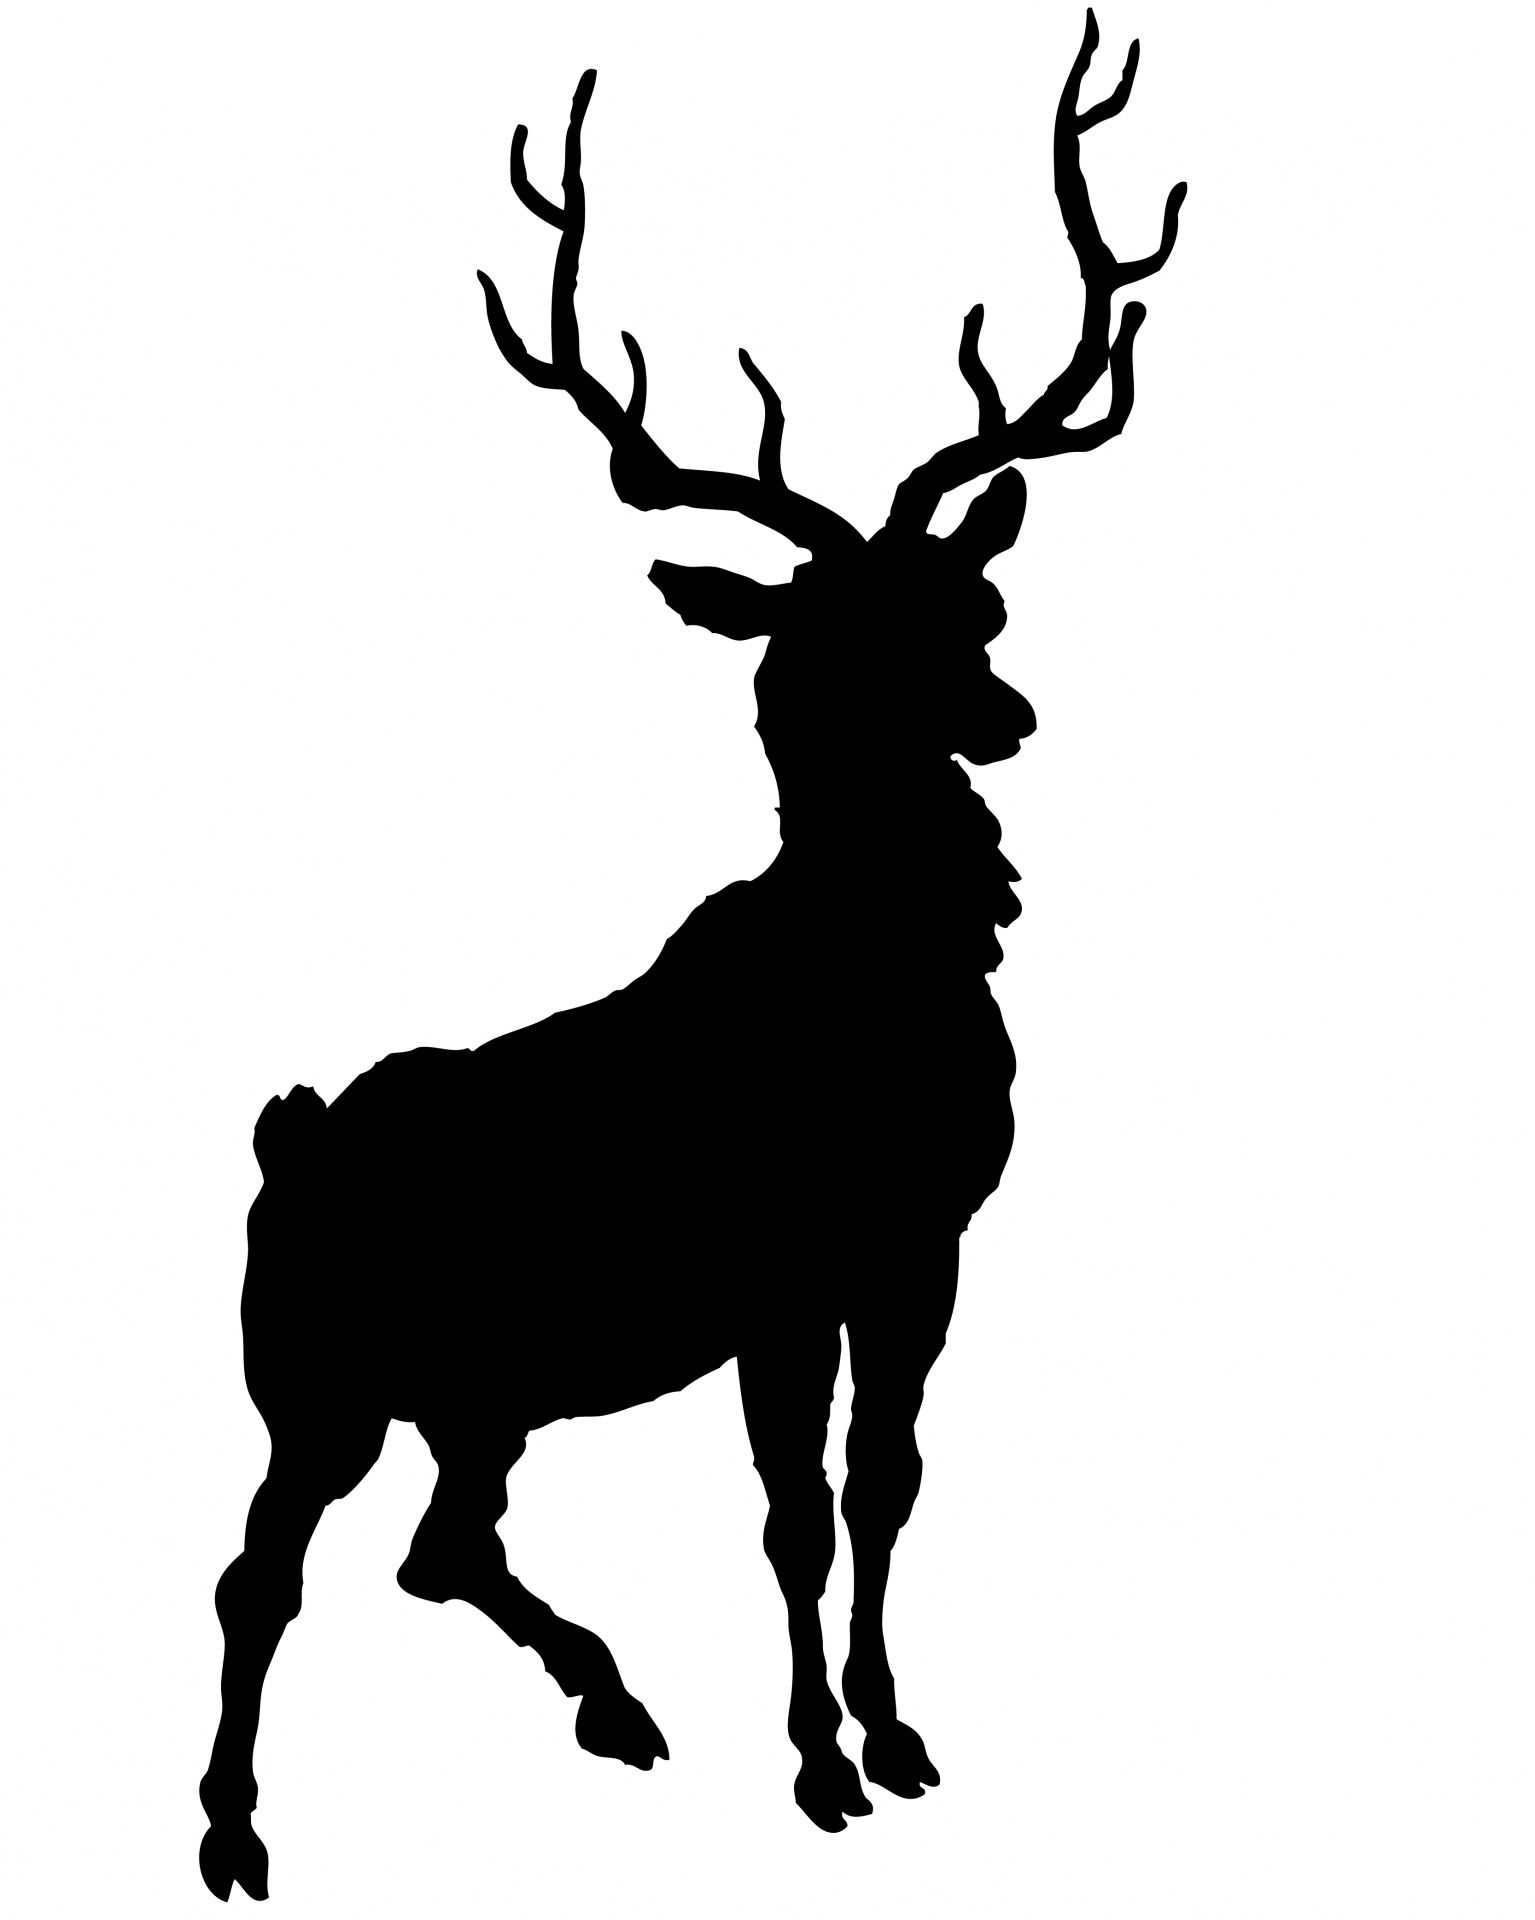 1535x1920 Deer, Stage Silhouette Clipart Free Stock Photo